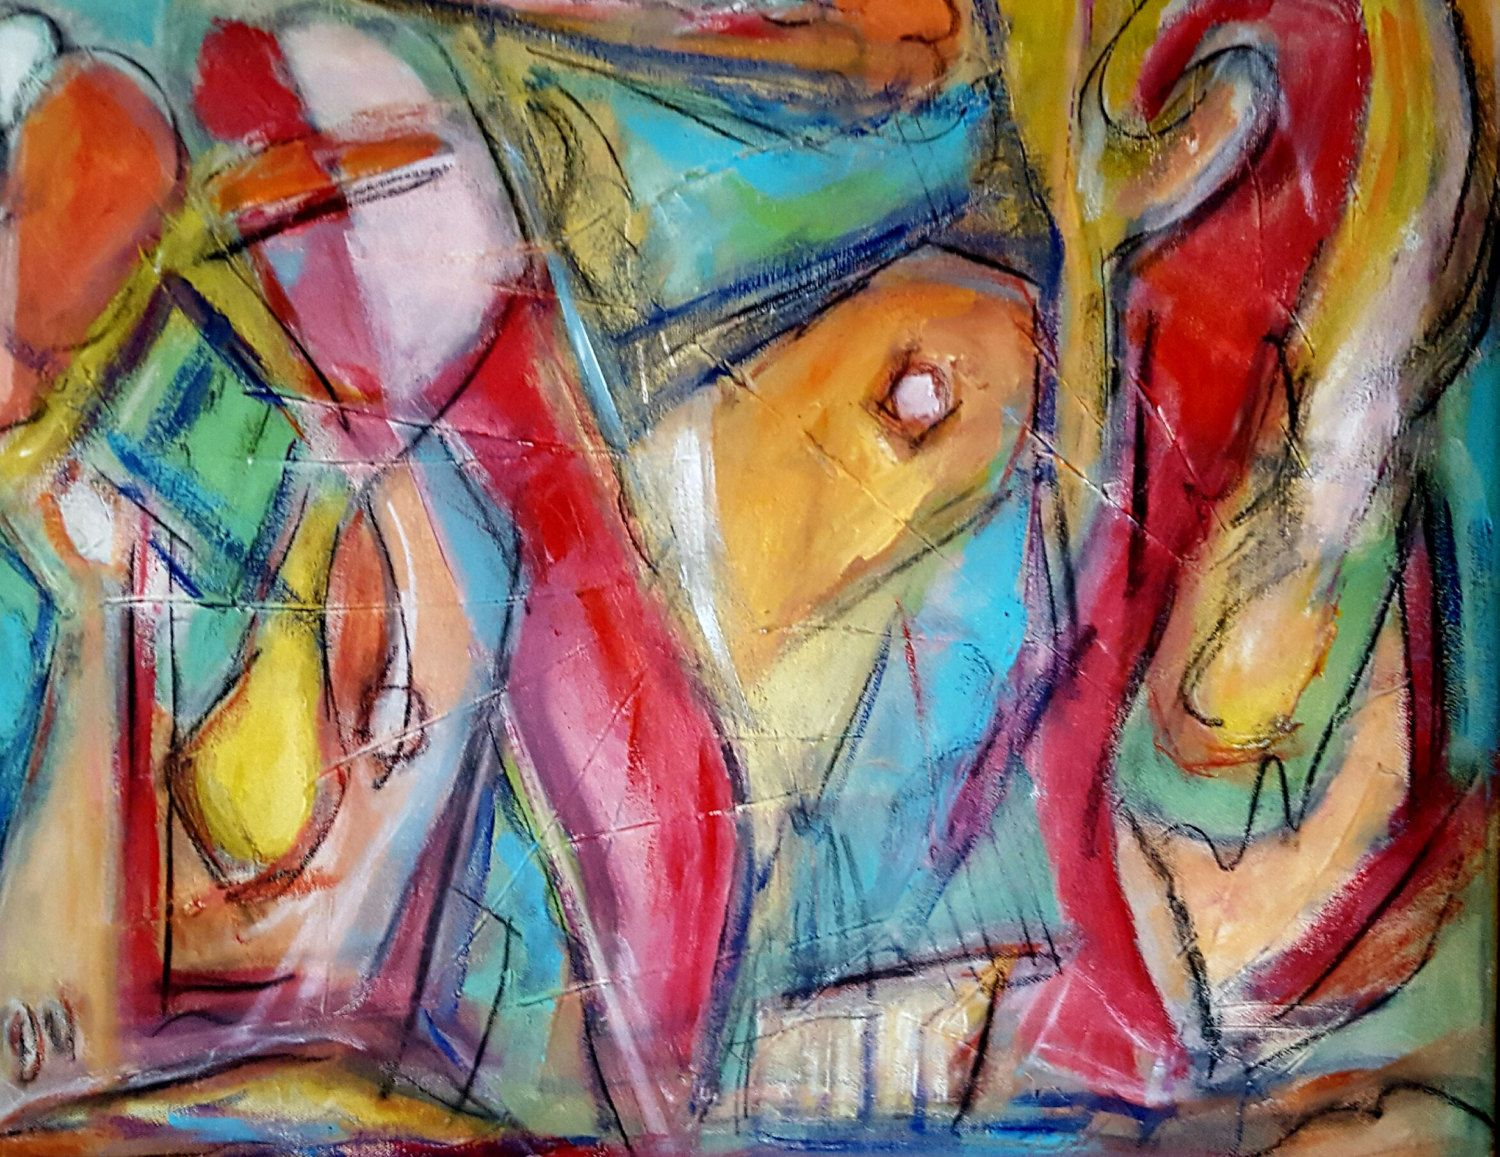 """Original Abstract Painting, Abstract, Colorful Painting, One of A Kind, Mixed Media Painting, """"When We First Meet"""" by KerriPowersArt on Etsy"""